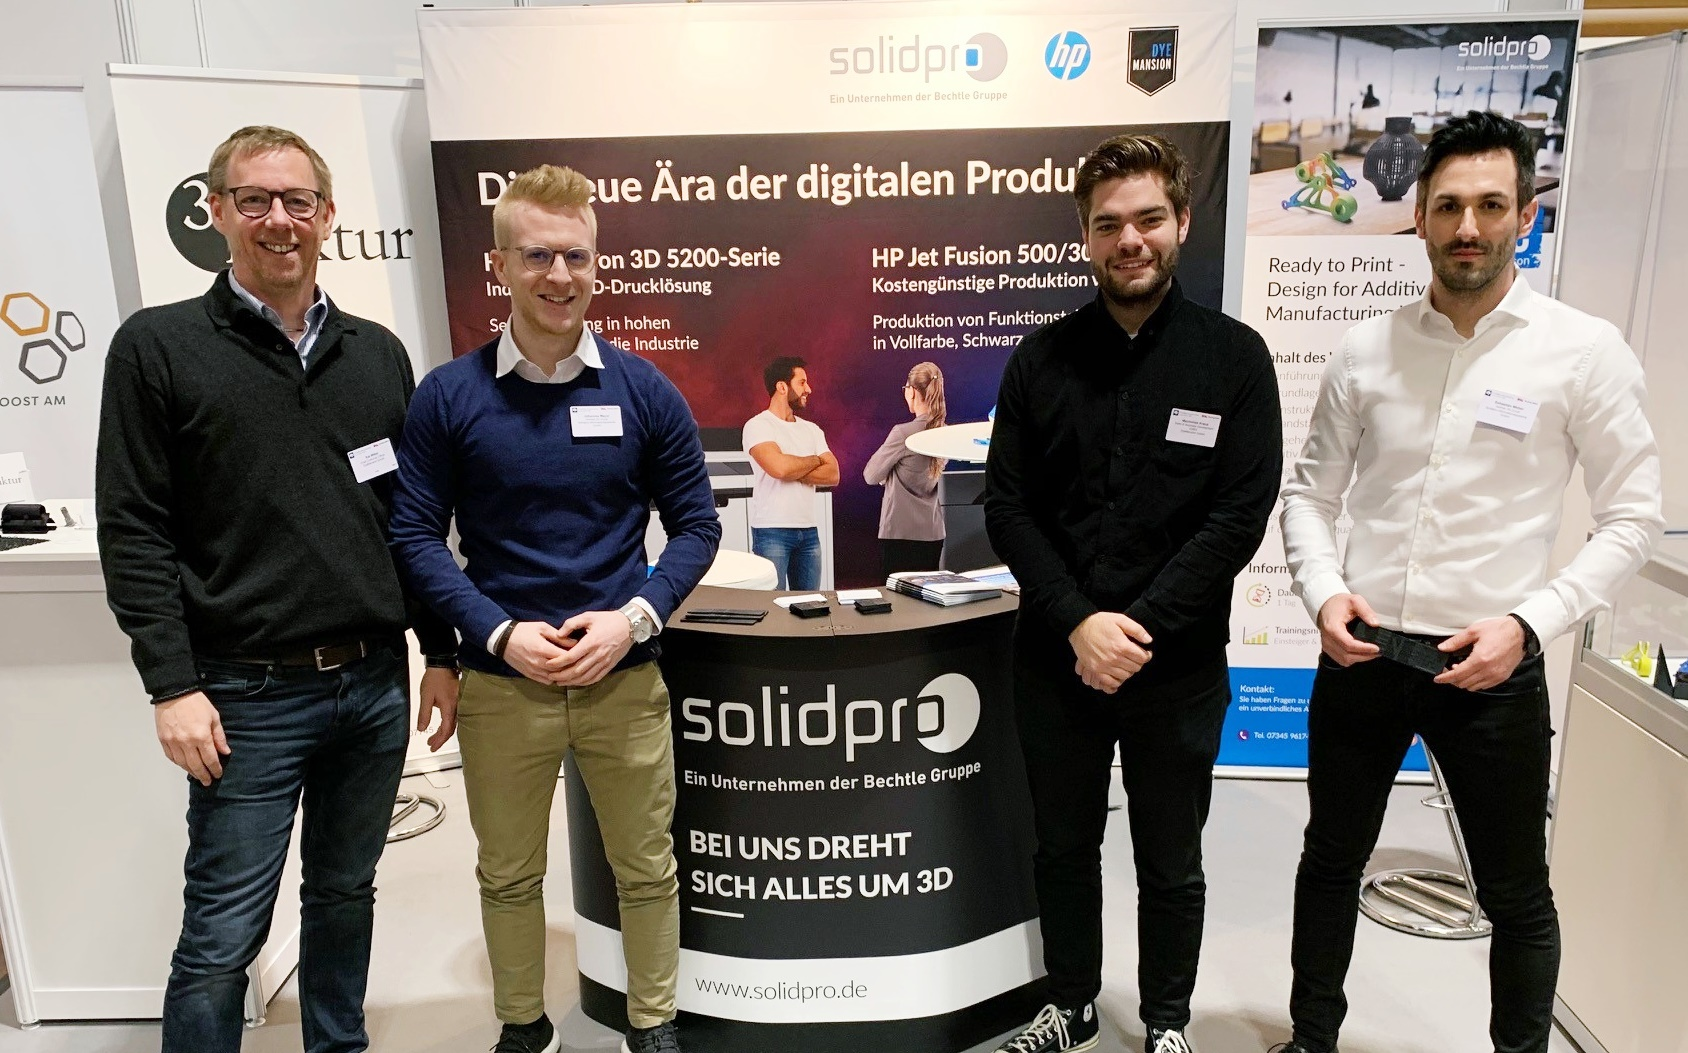 Solidpro and DyeMansion at AM Forum. Photo via Solidpro.